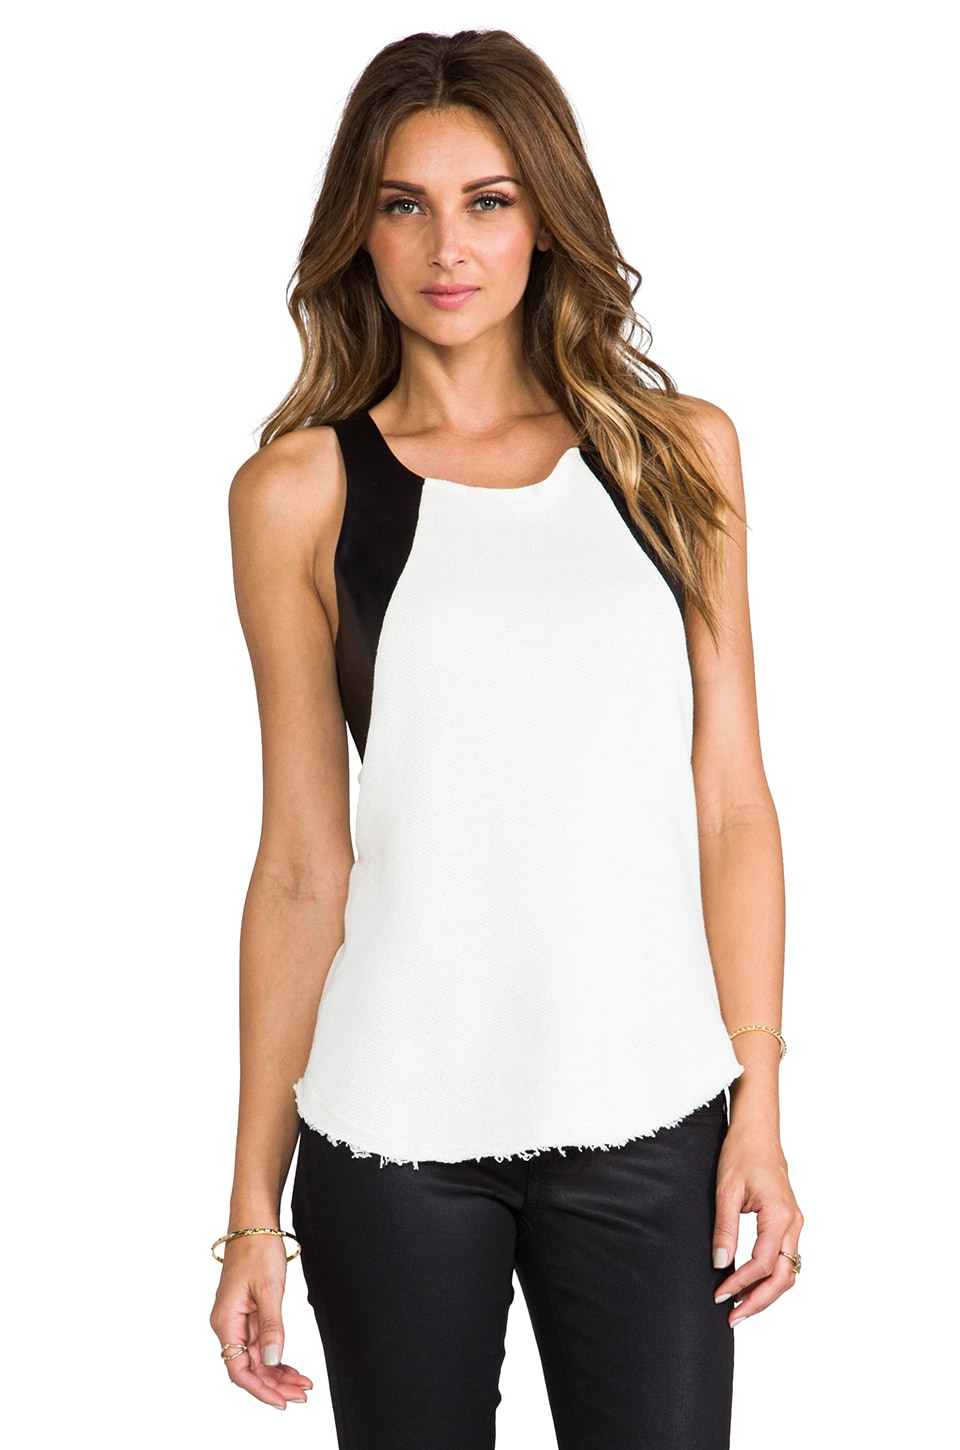 TOWNSEN Storm Thermal Tank in White/Black